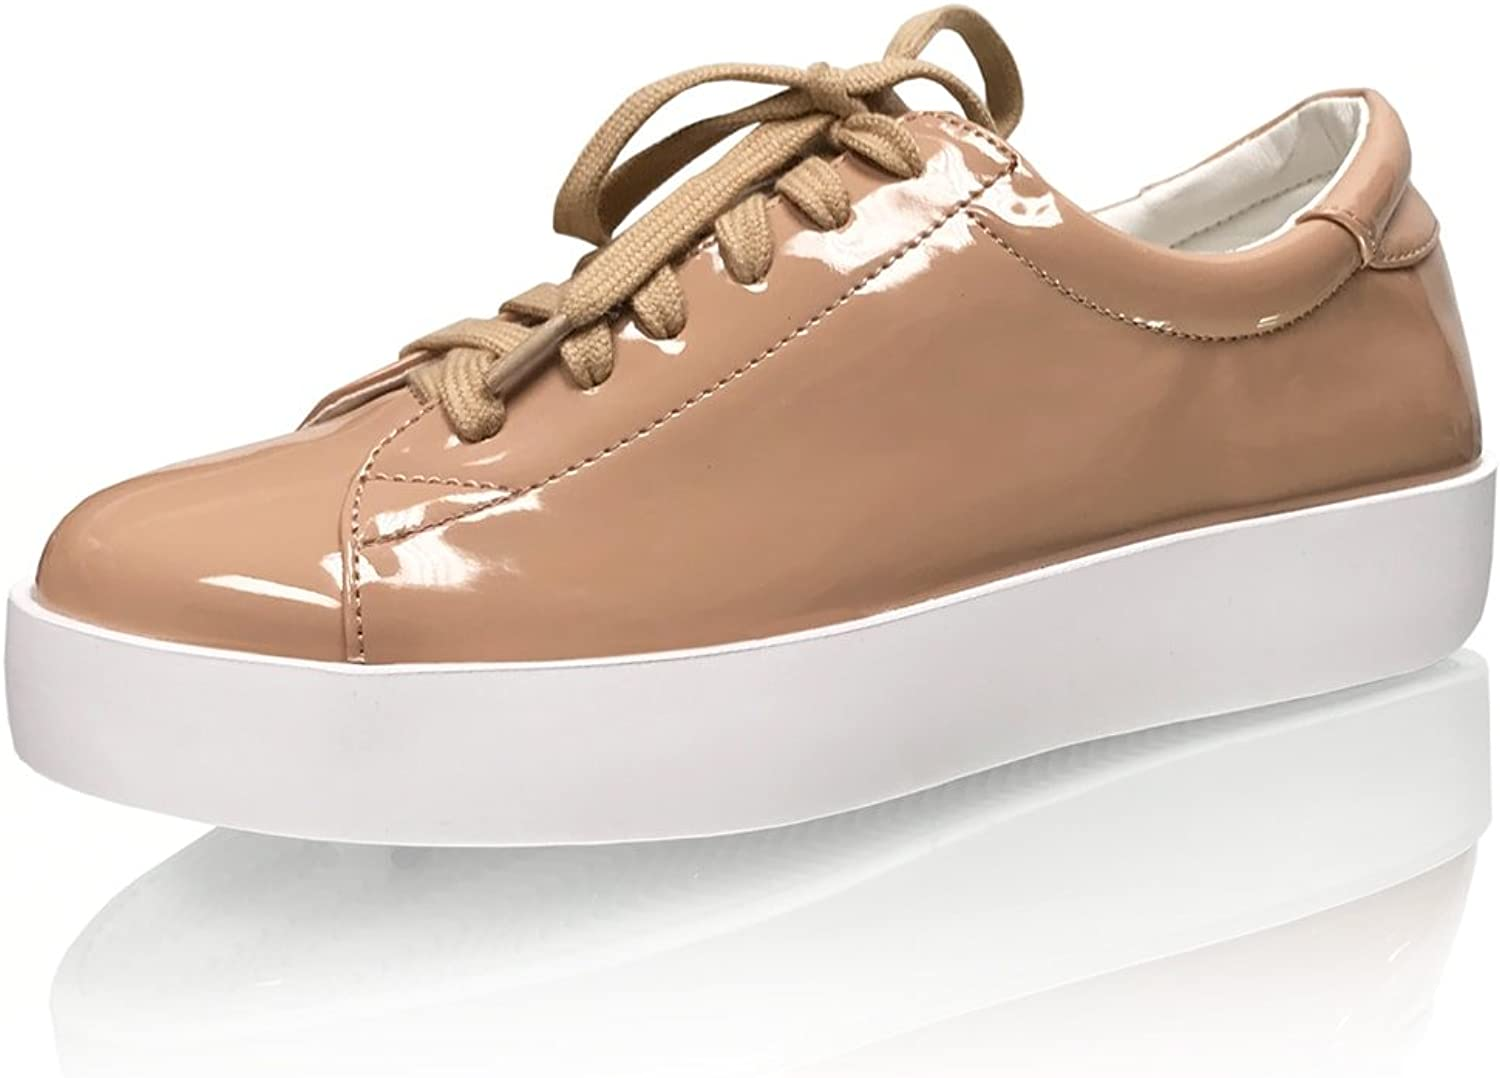 Marc Defang New York Womens Patent Leather Nude Fashion Sneakers - The Floater